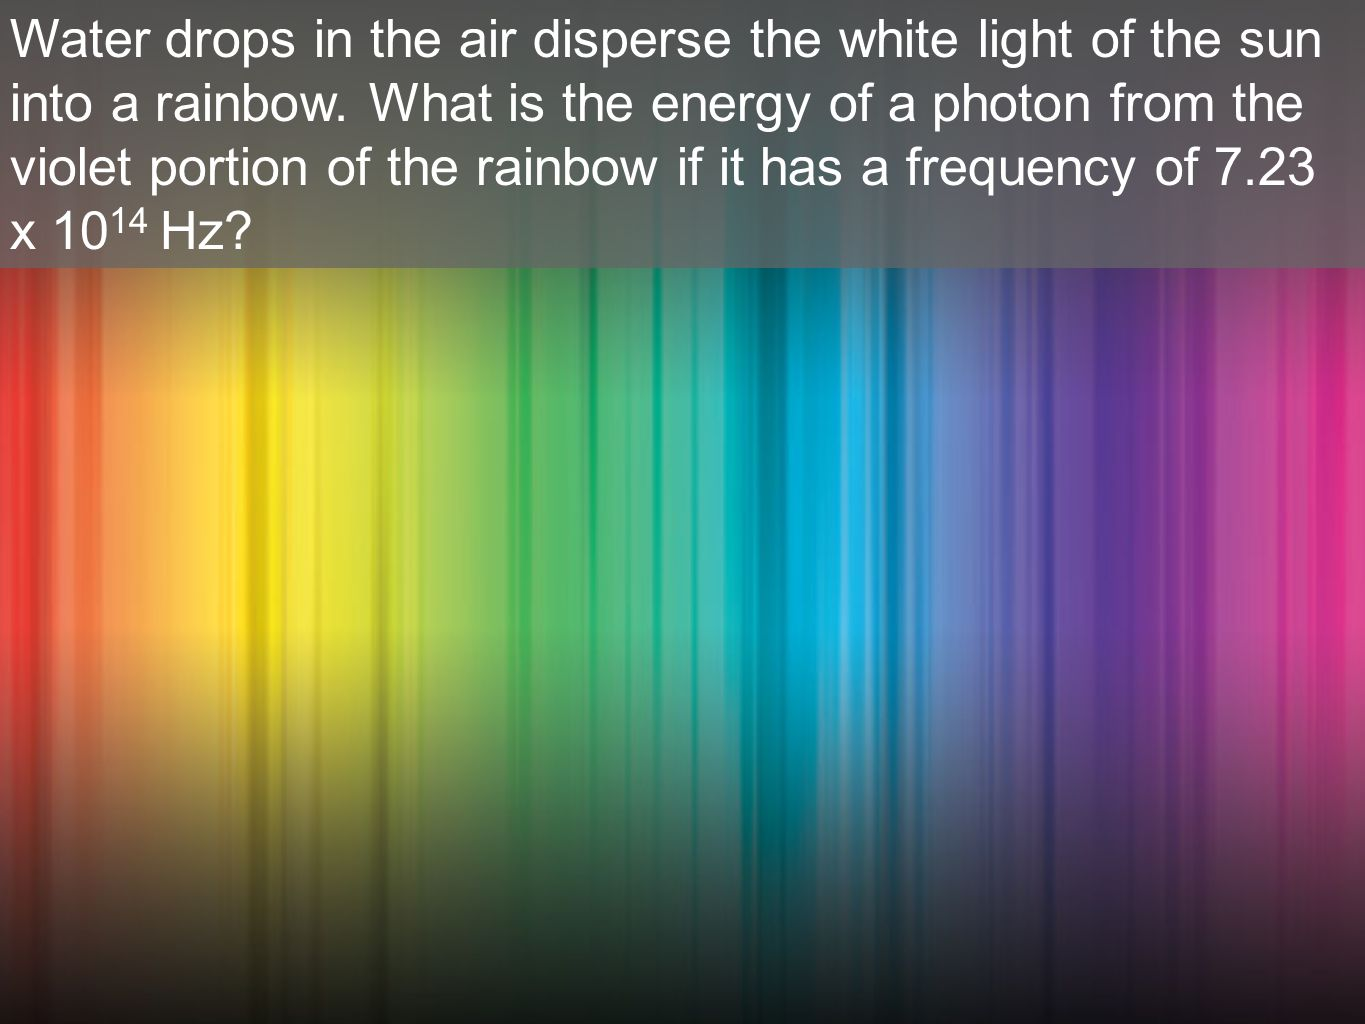 Water drops in the air disperse the white light of the sun into a rainbow.